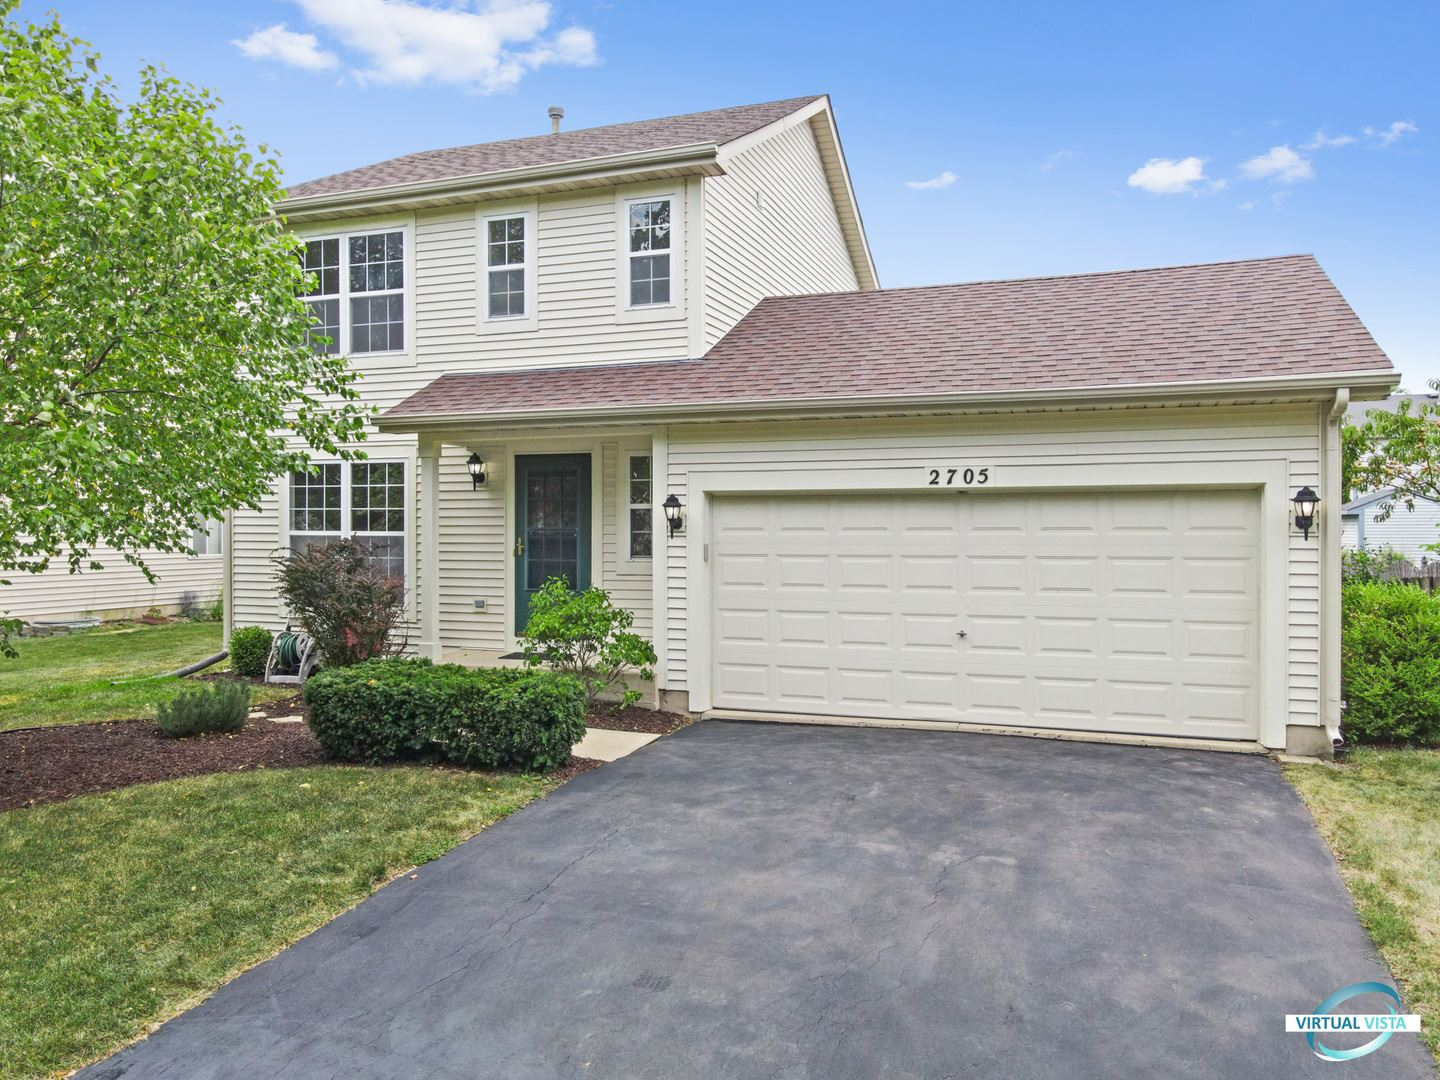 2705 Crested Butte Trail, Plainfield, IL 60586 - MLS#: 10806925